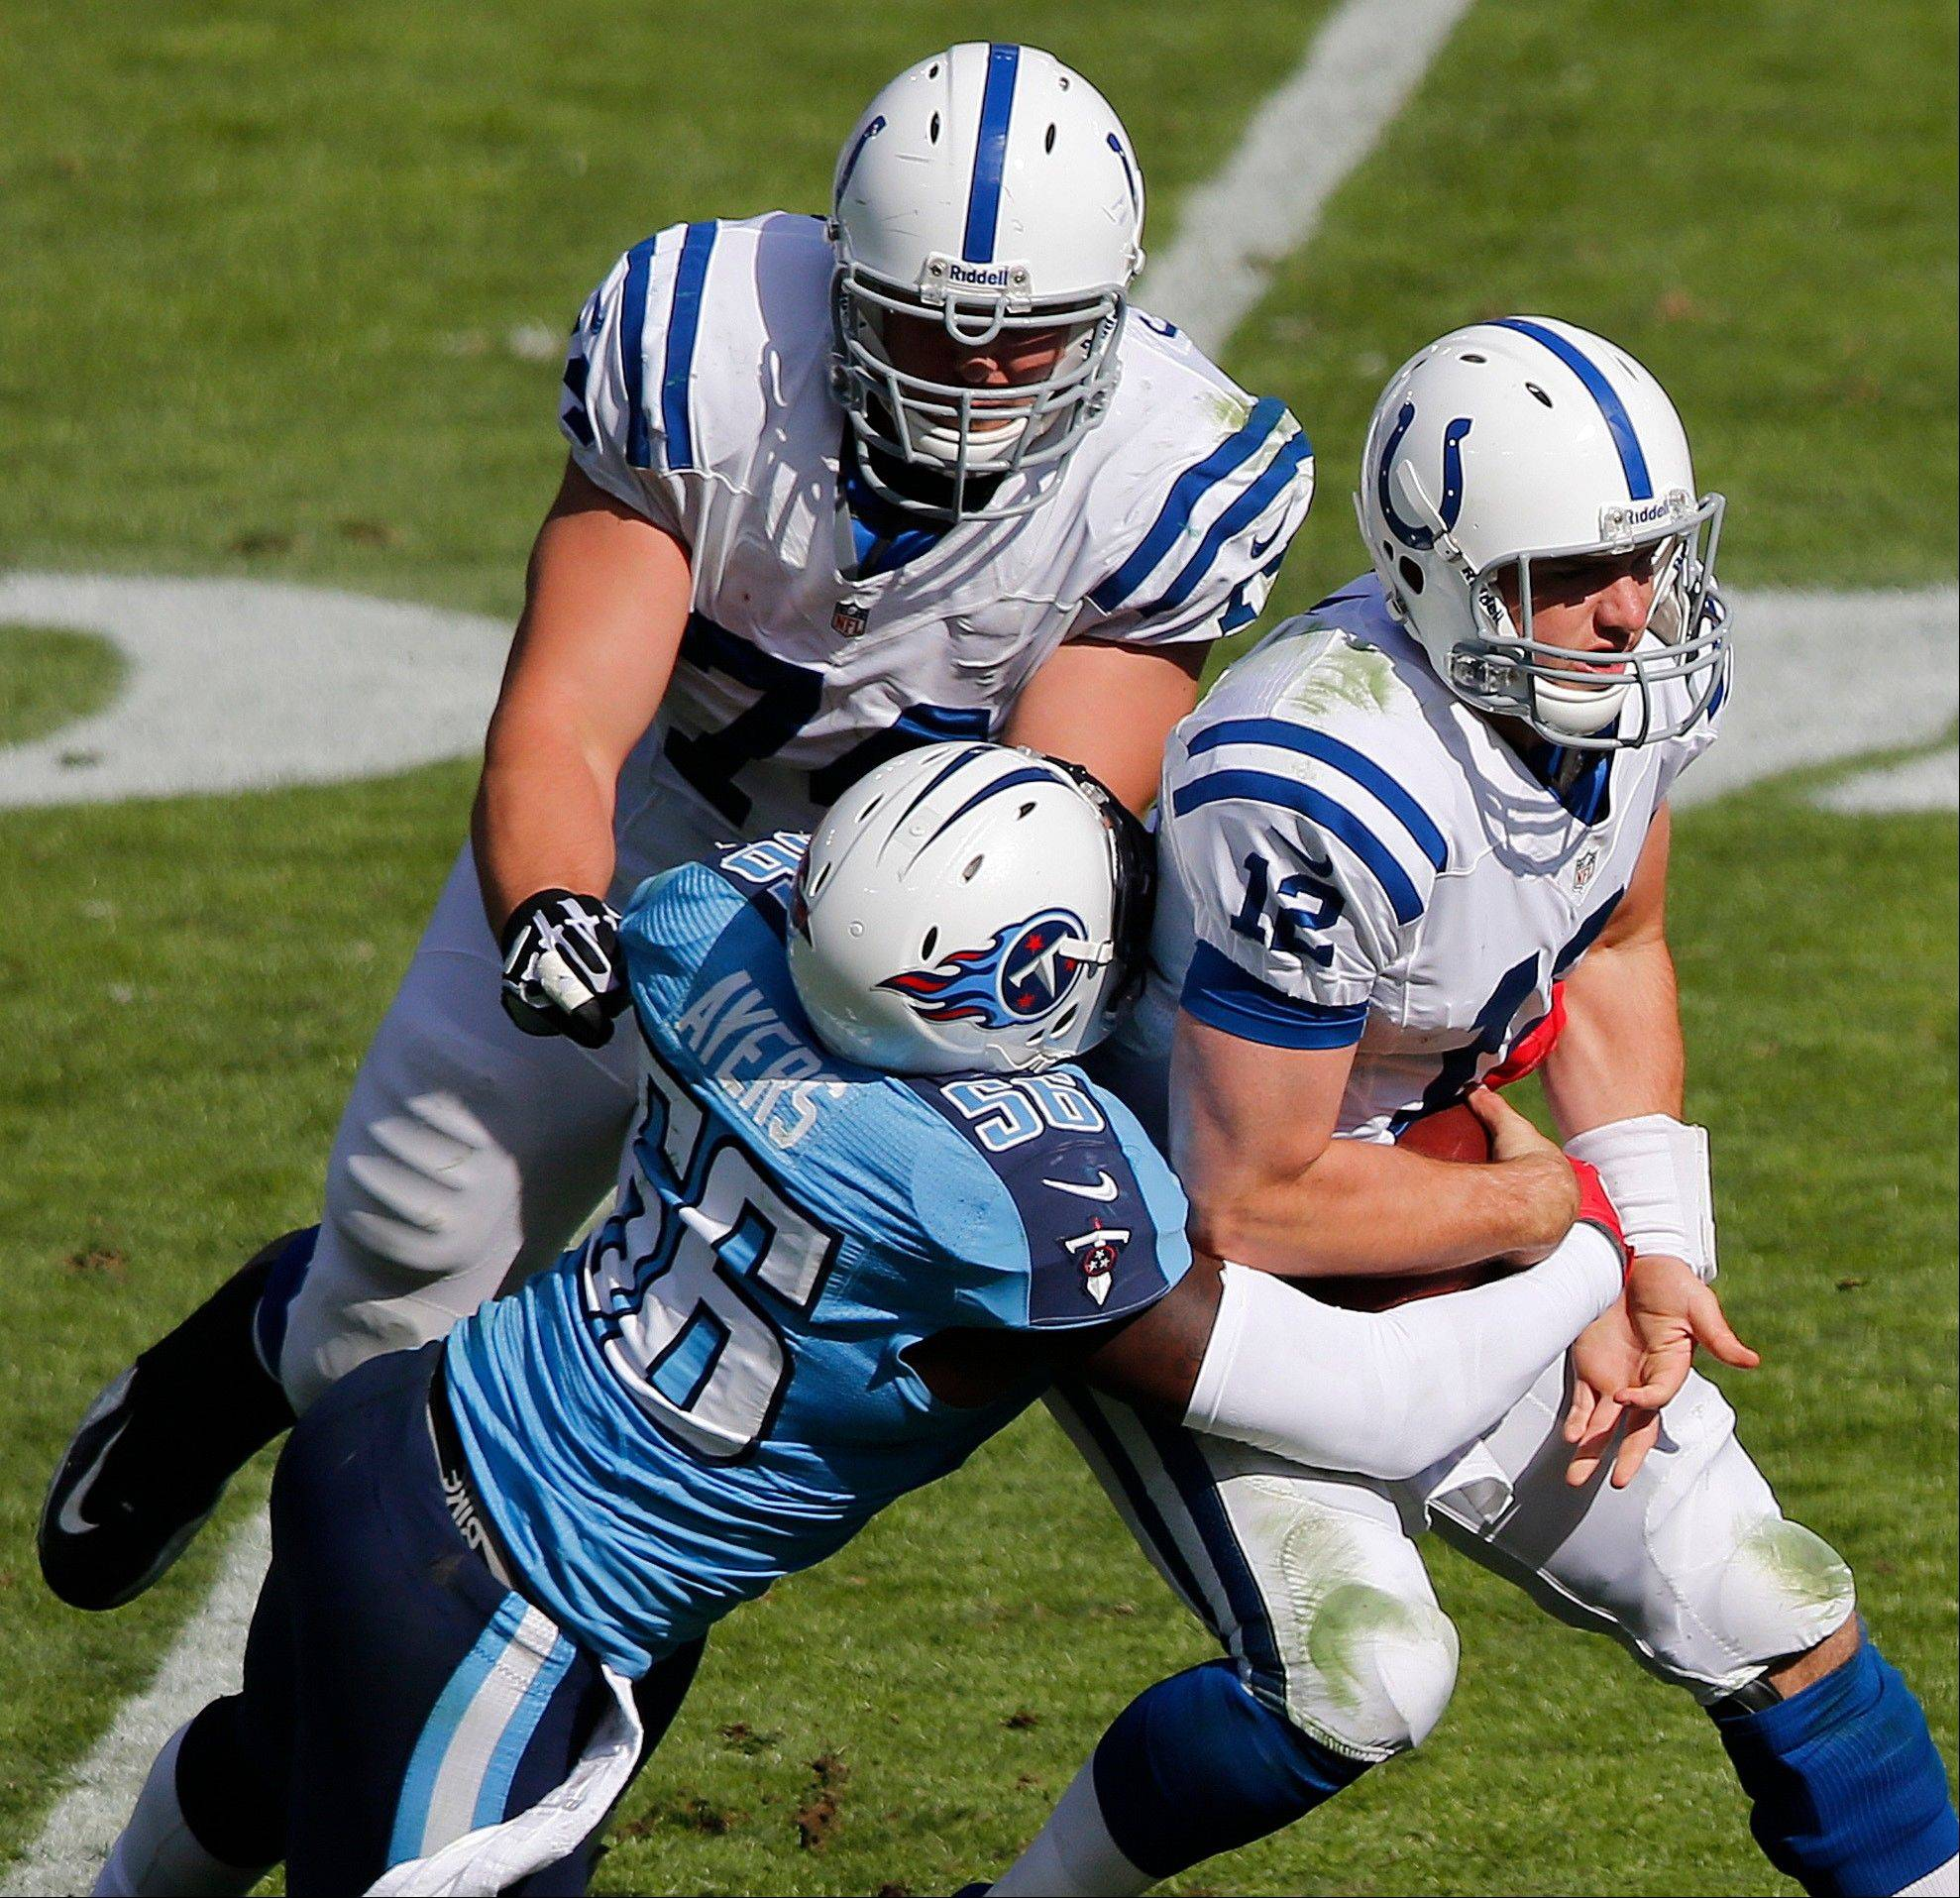 Indianapolis Colts quarterback Andrew Luck (12) is sacked by Tennessee Titans outside linebacker Akeem Ayers (56) as Indianapolis Colts tackle Anthony Castonzo (74) blocks during the second half in Nashville, Tenn.